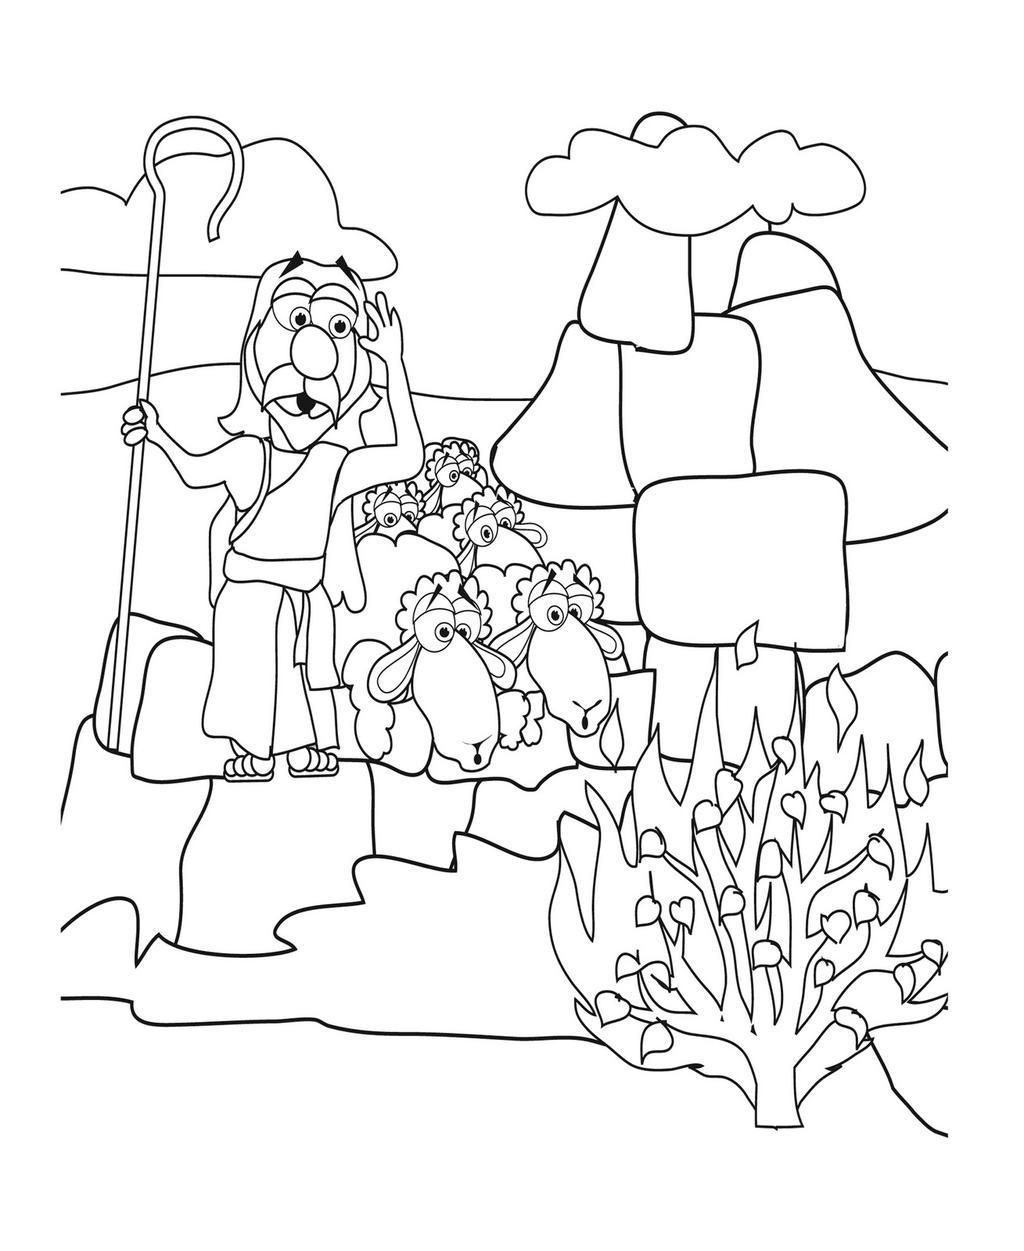 Moses Passover Coloring Pages And Exodus - Free Printable Coloring Pages